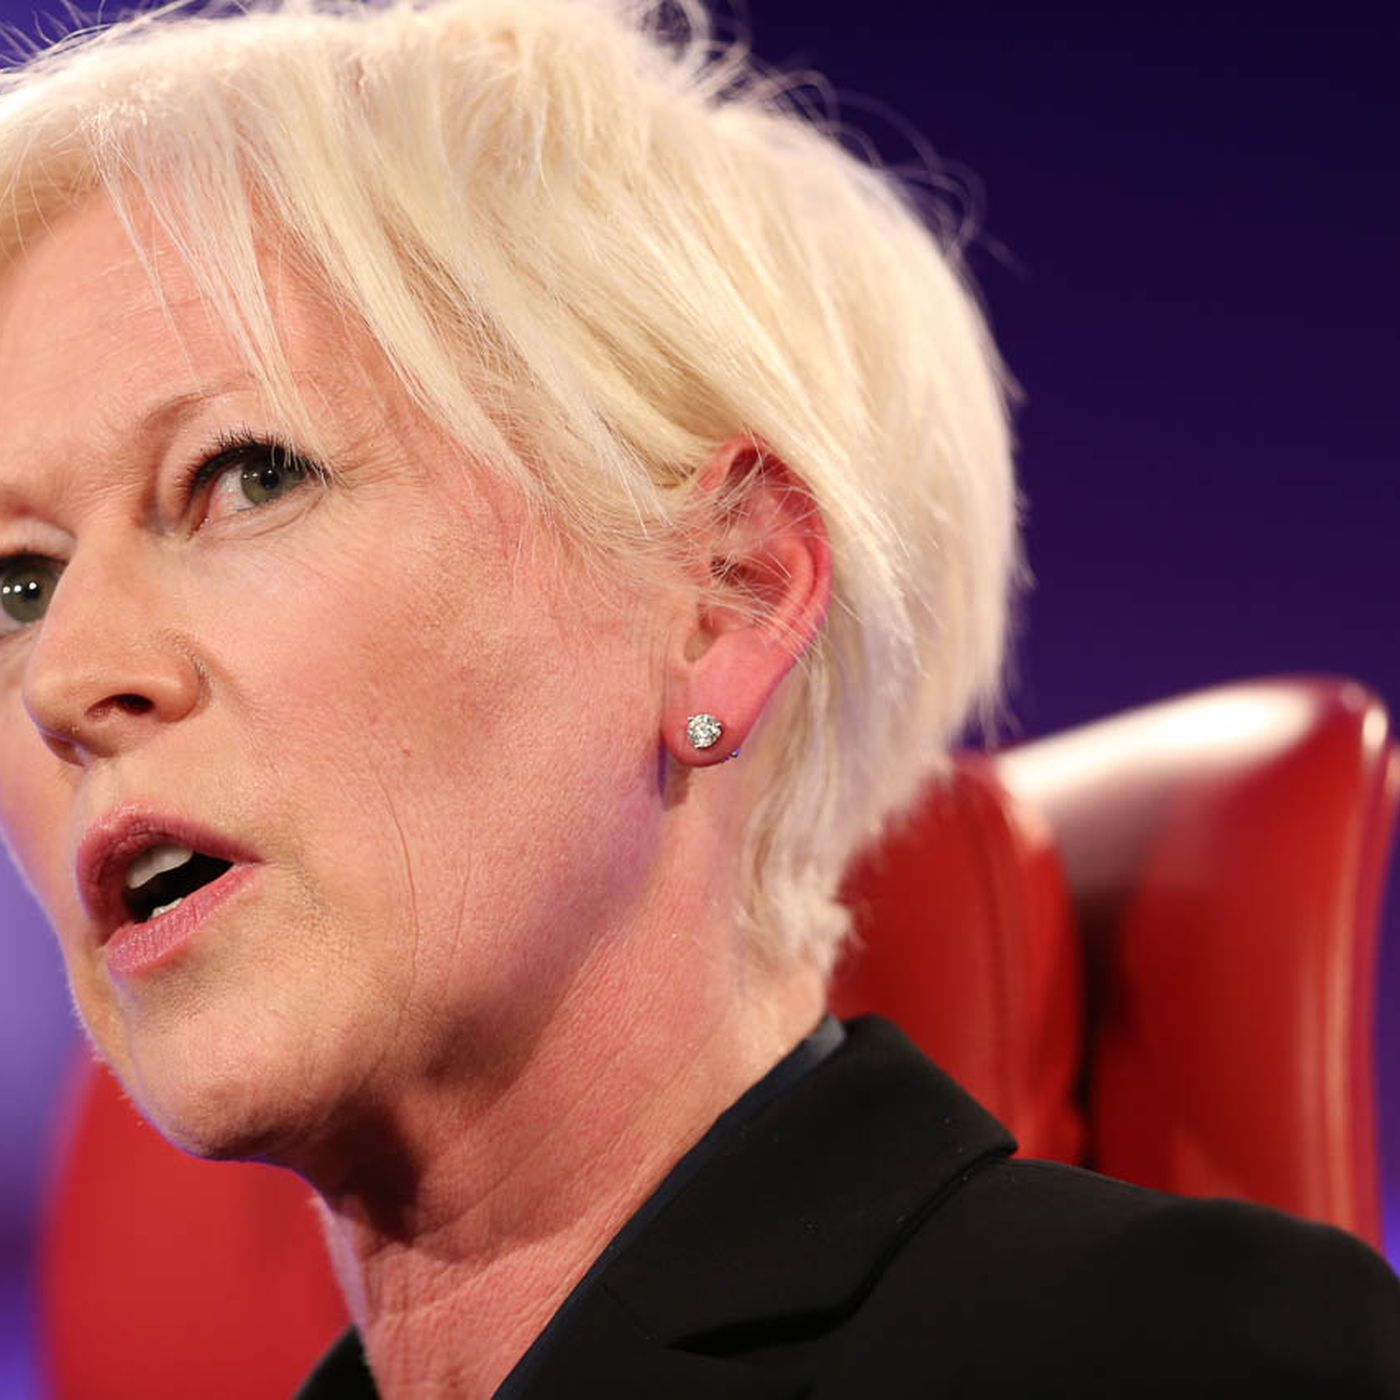 Ear Sex Porn here's what cosmo editor joanna coles has to say about